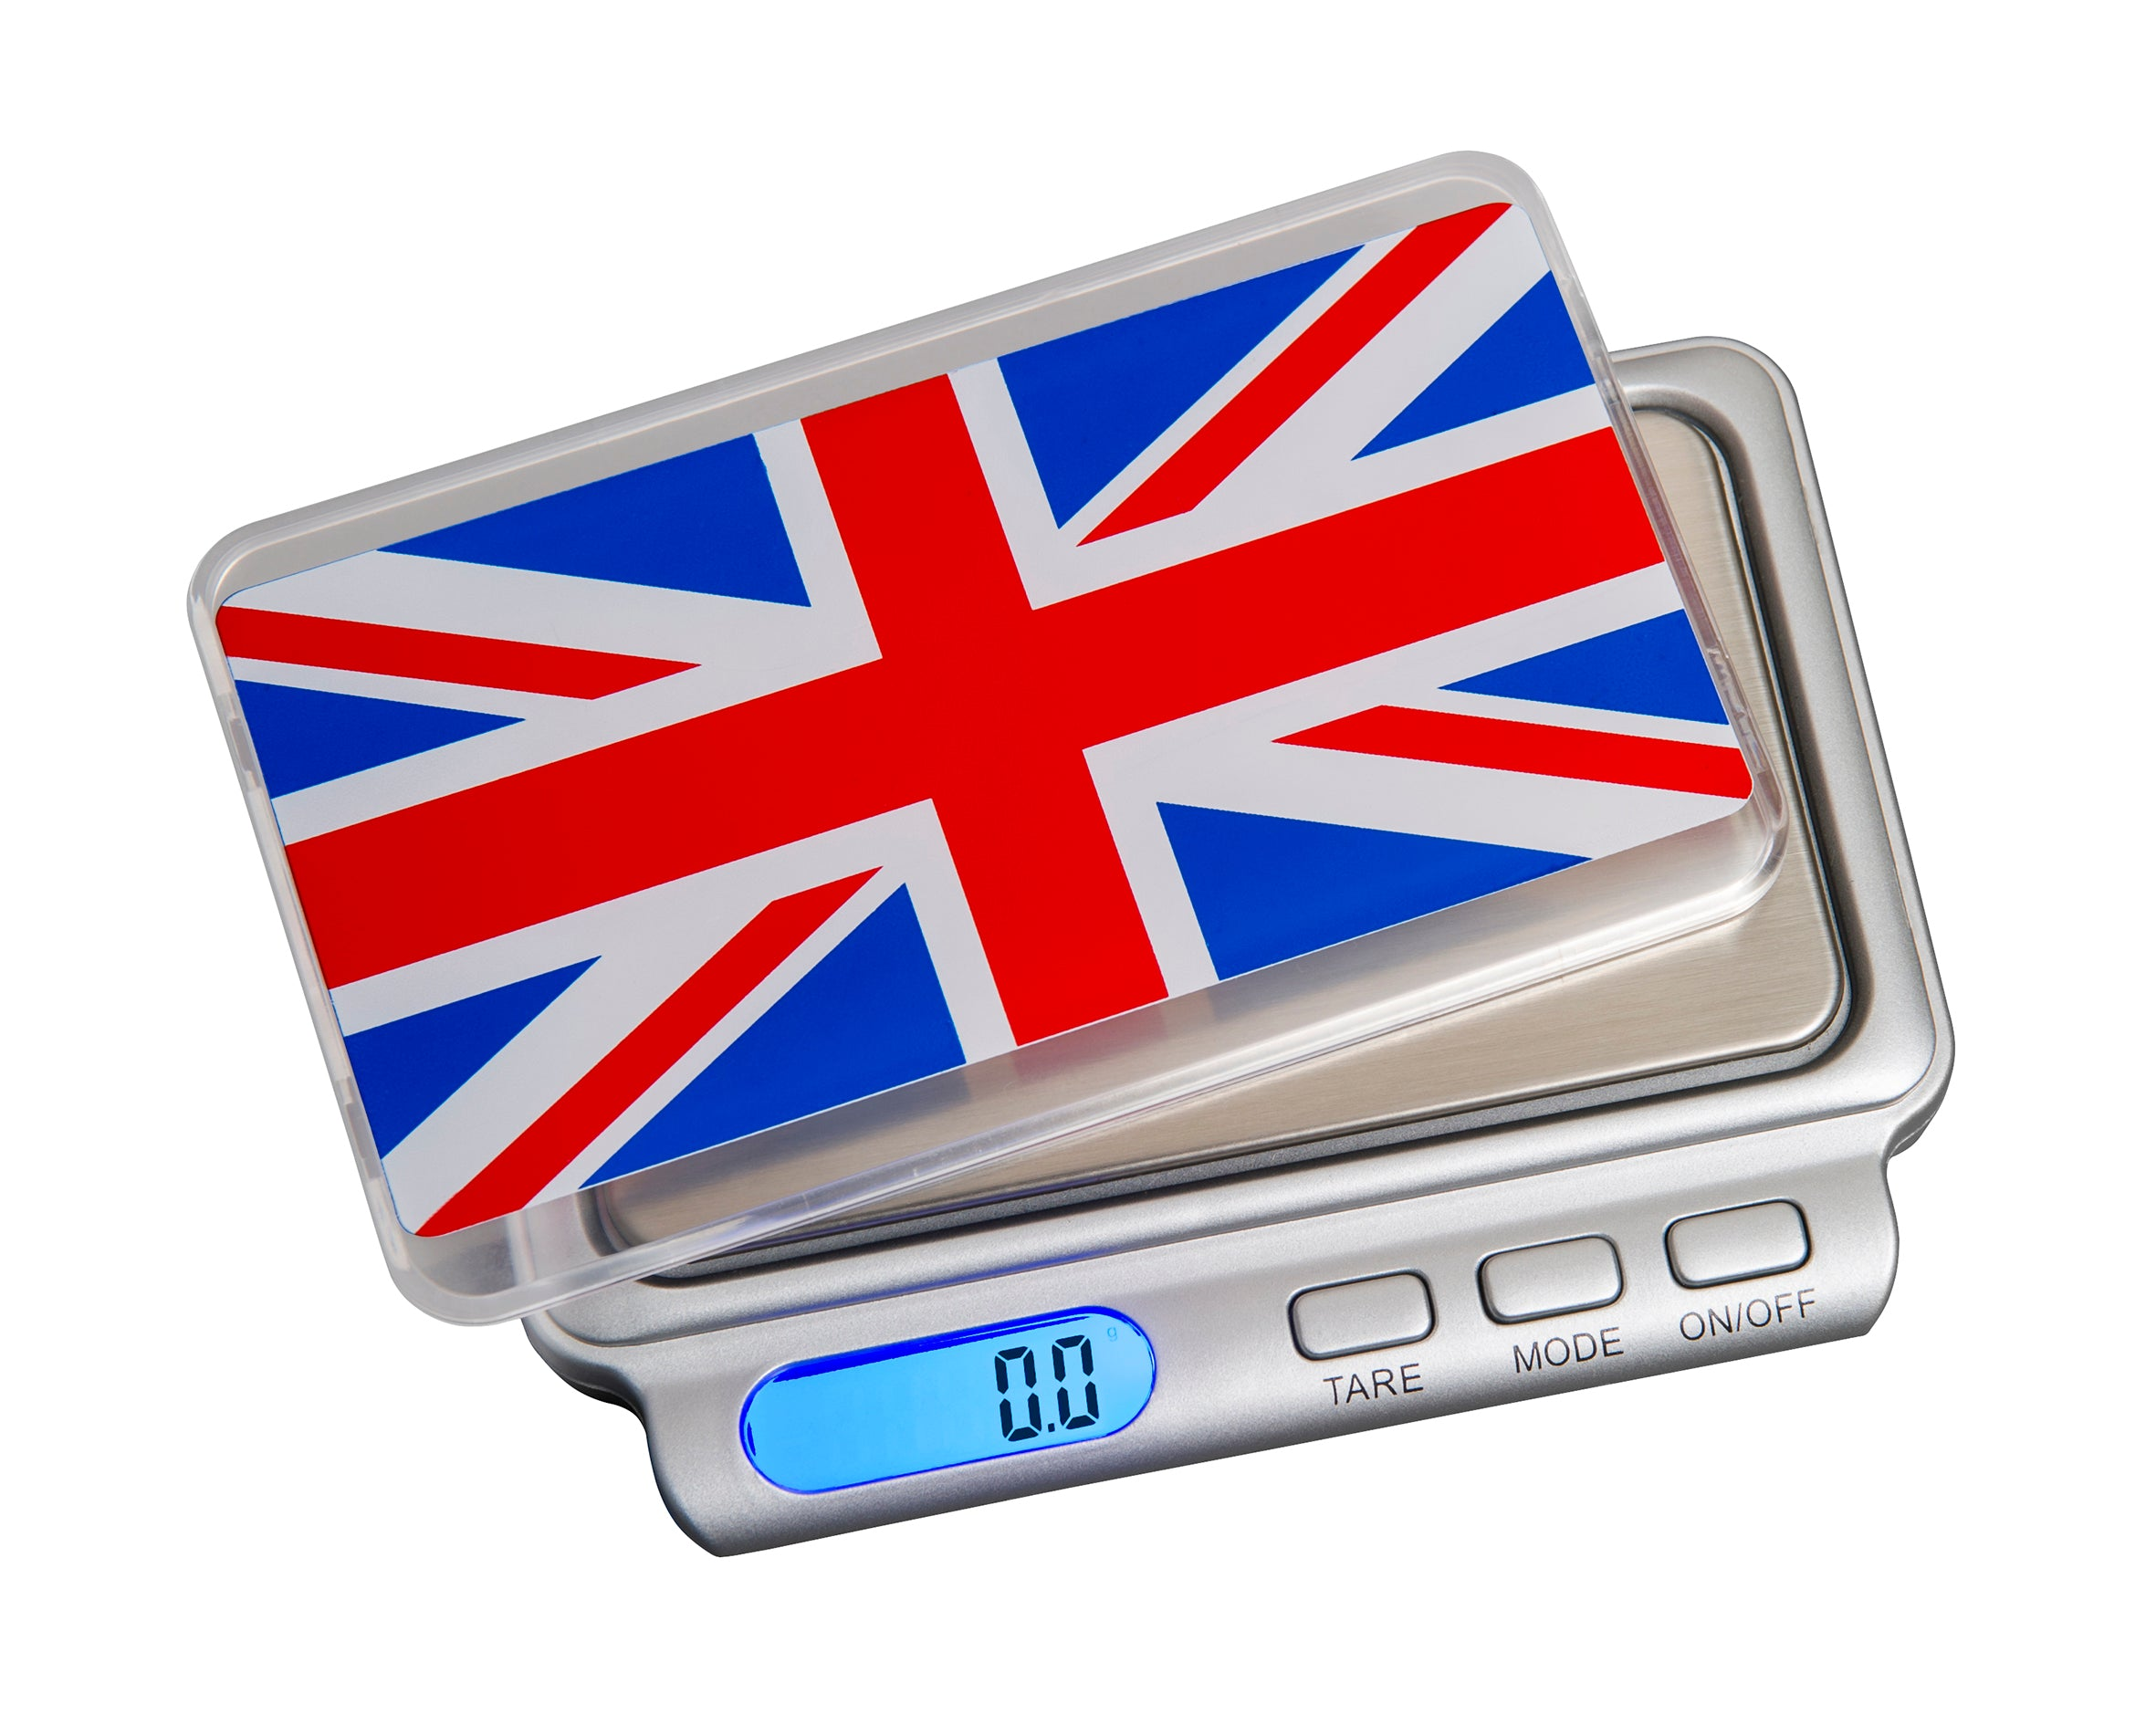 SALE! TW-600-GB On Balance Special Edition Union Jack Truweigh 600g x 0.1g